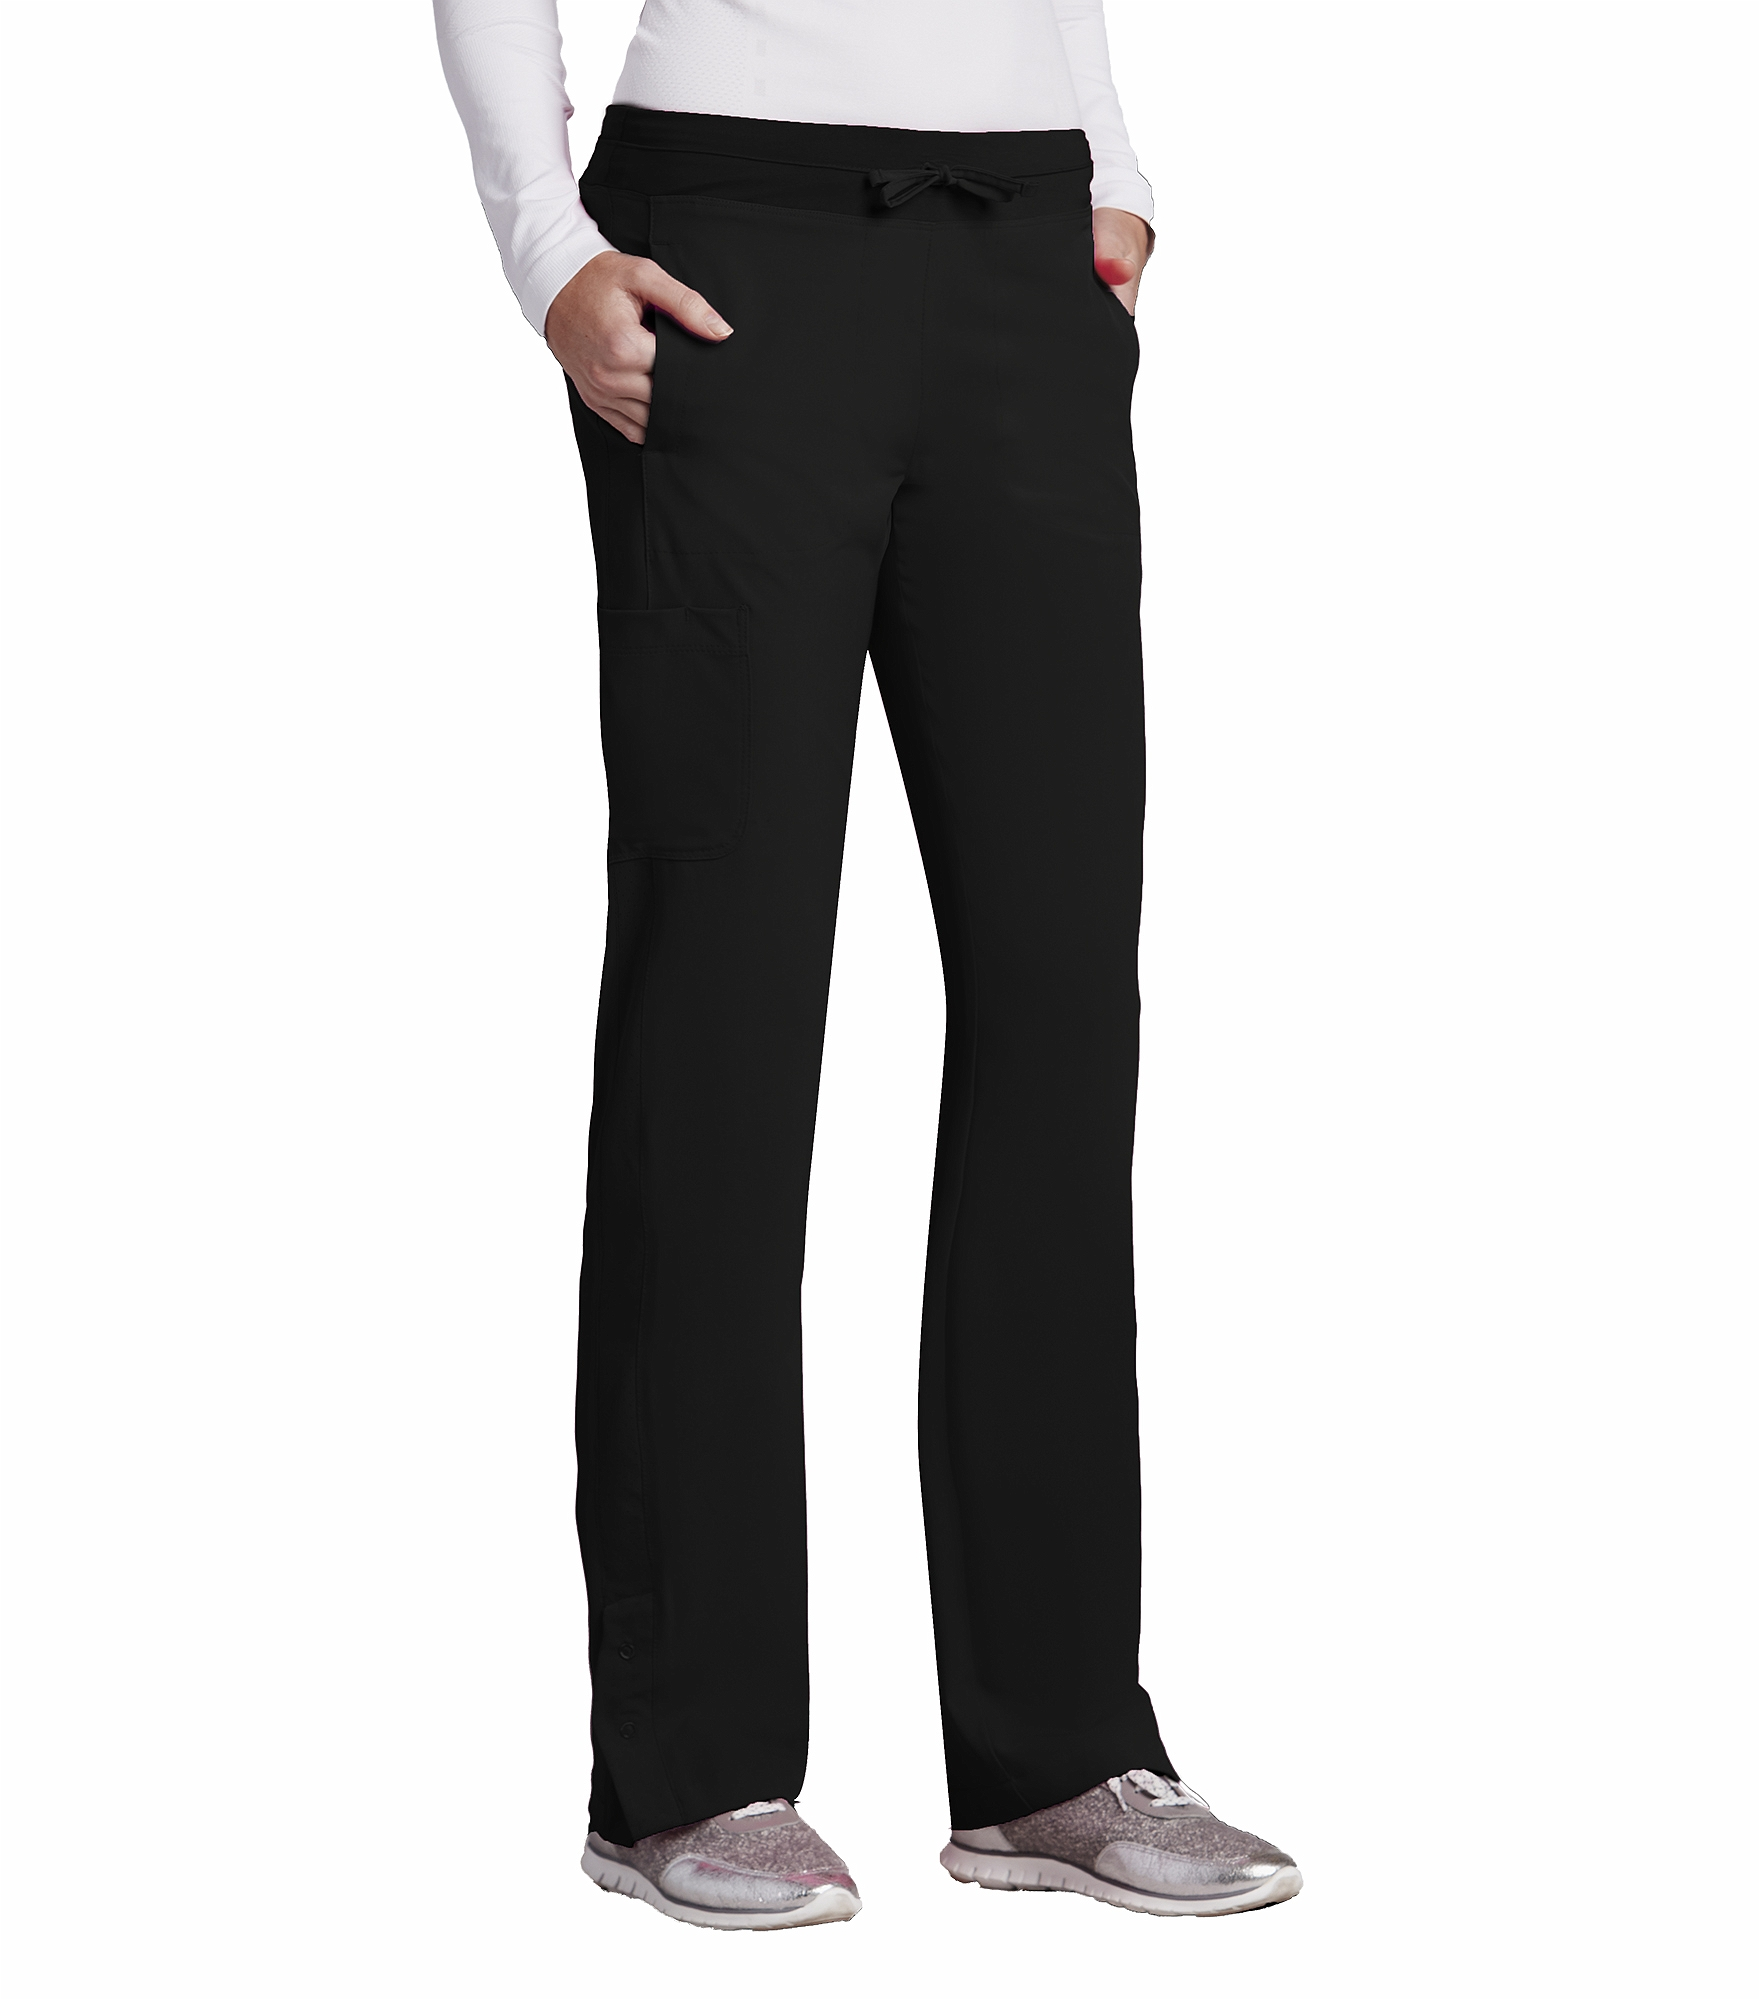 49124322f67 Barco One Women's 4 Pocket Straight Leg Drawstring Scrub Pants-5205 |  Medical Scrubs Collection